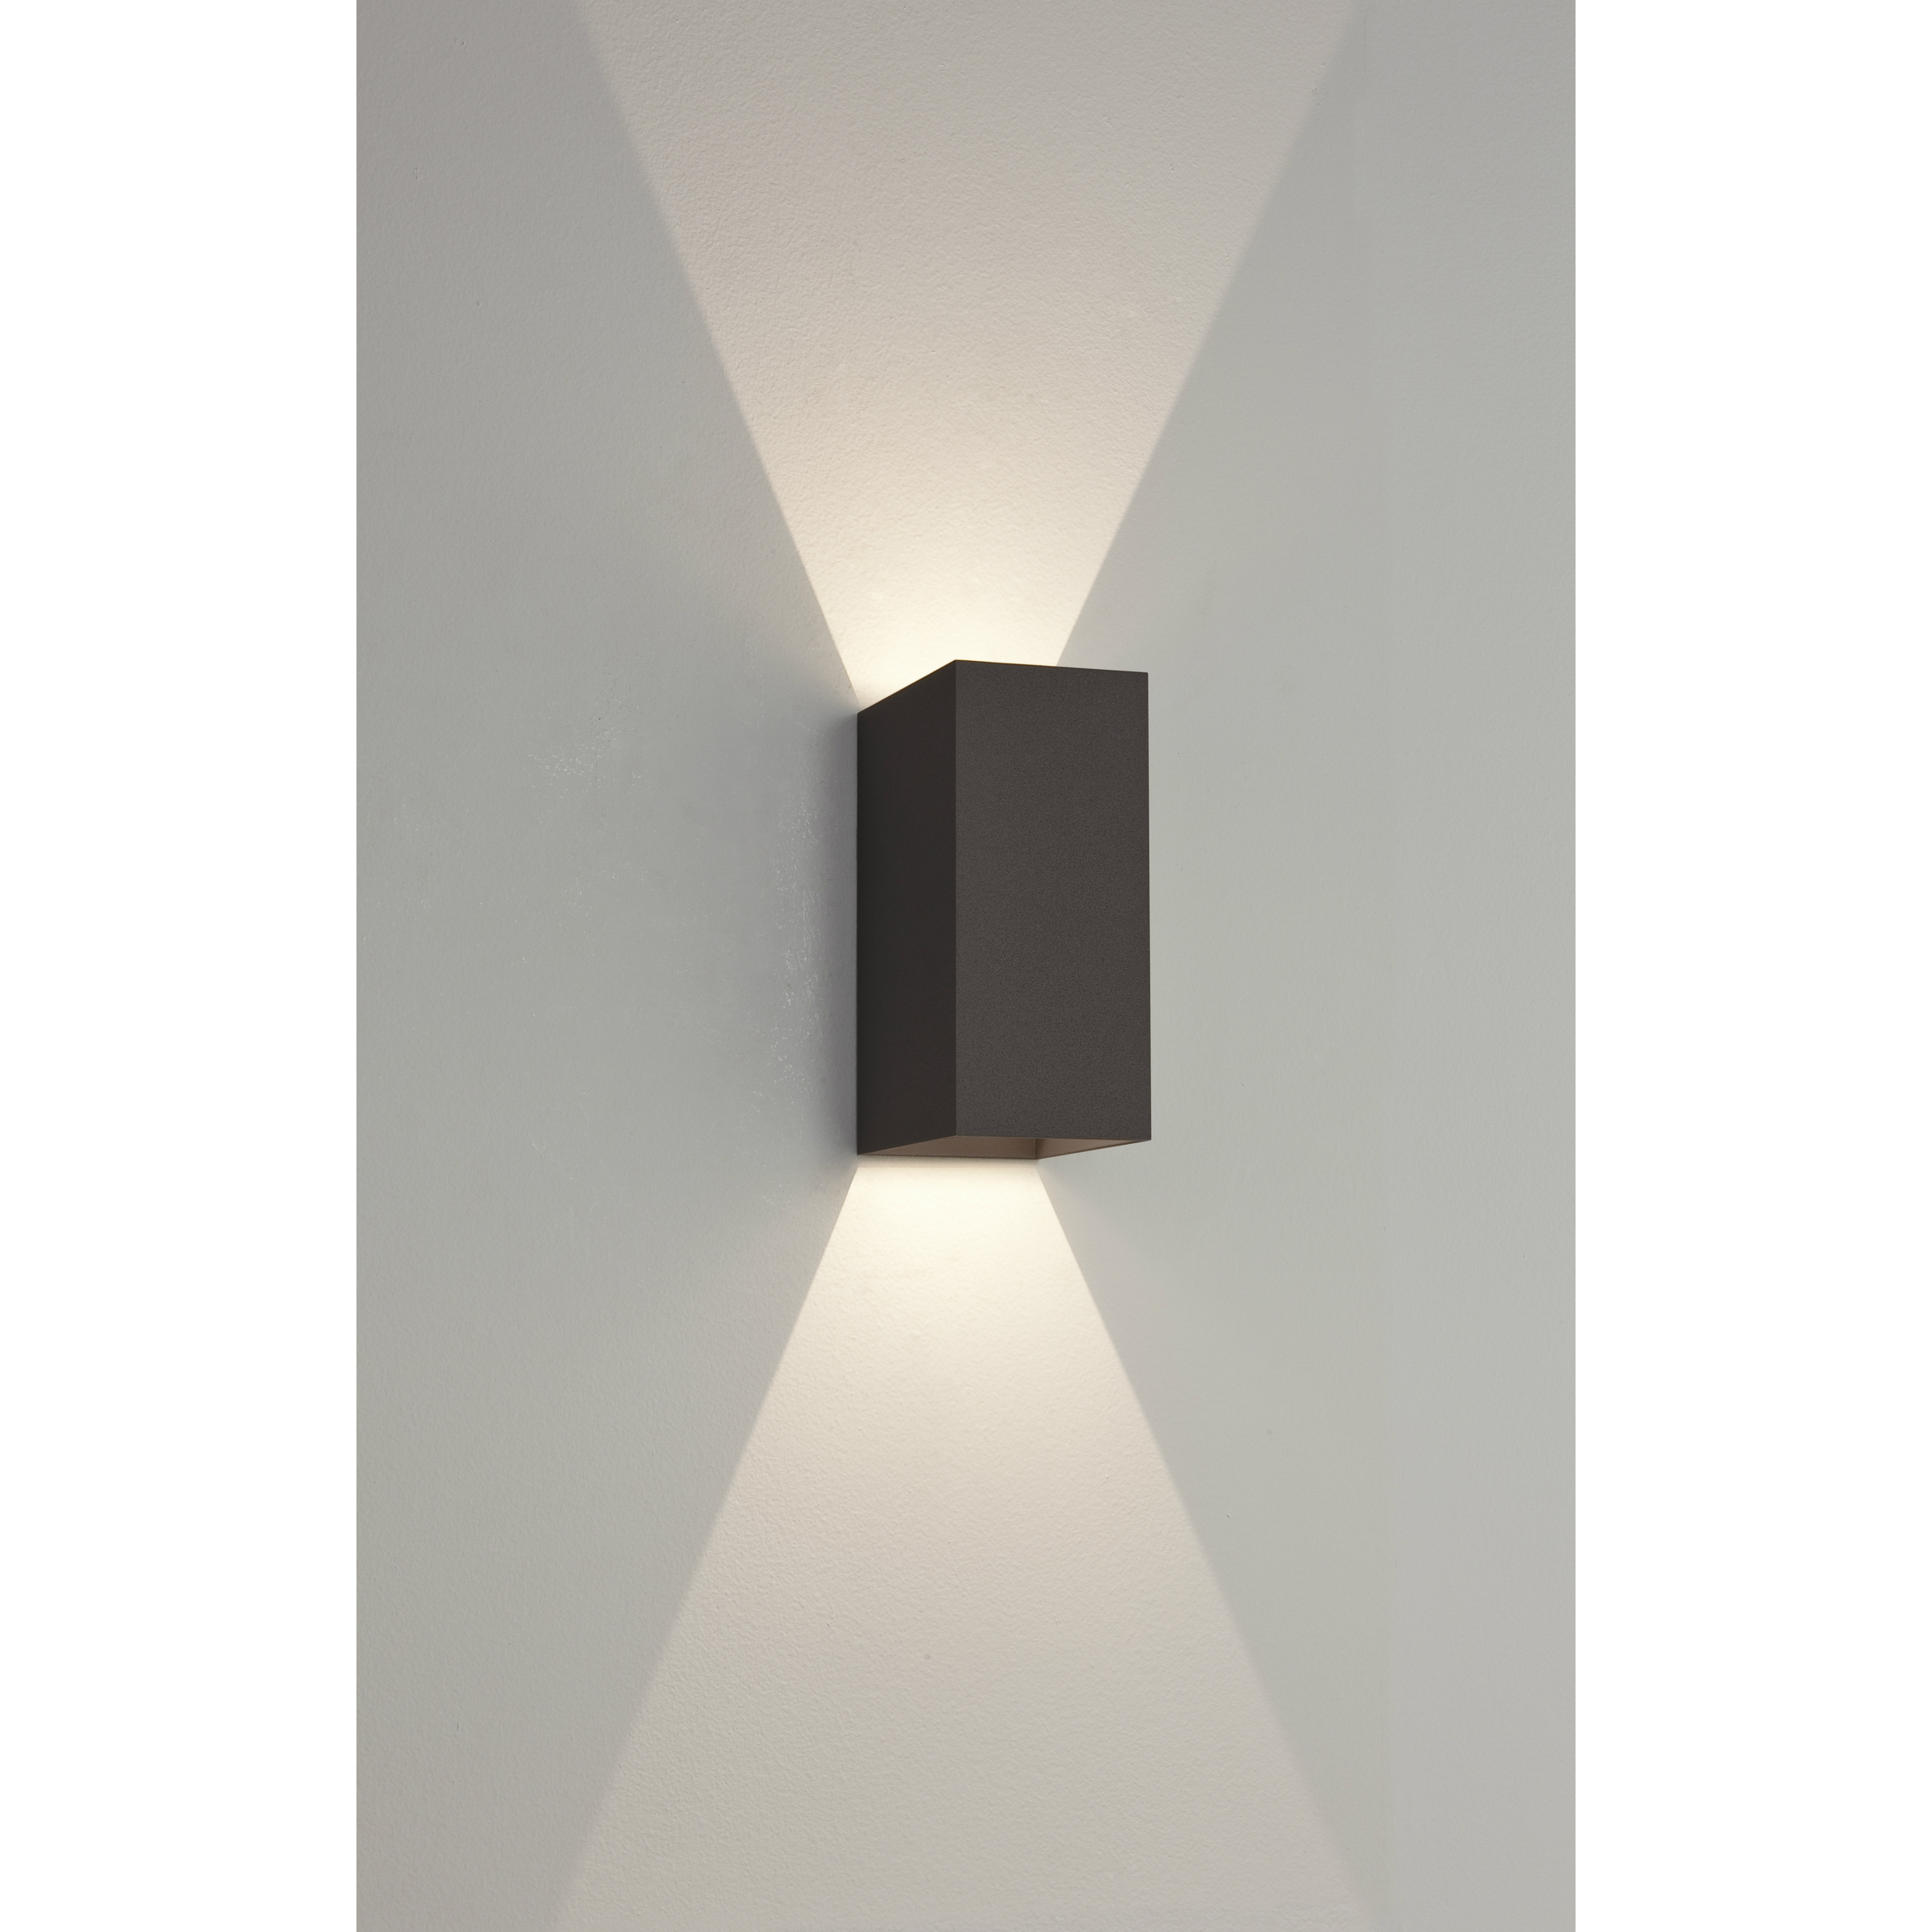 Half wall lanterns lights product categories light innovation oslo 160 black aloadofball Image collections